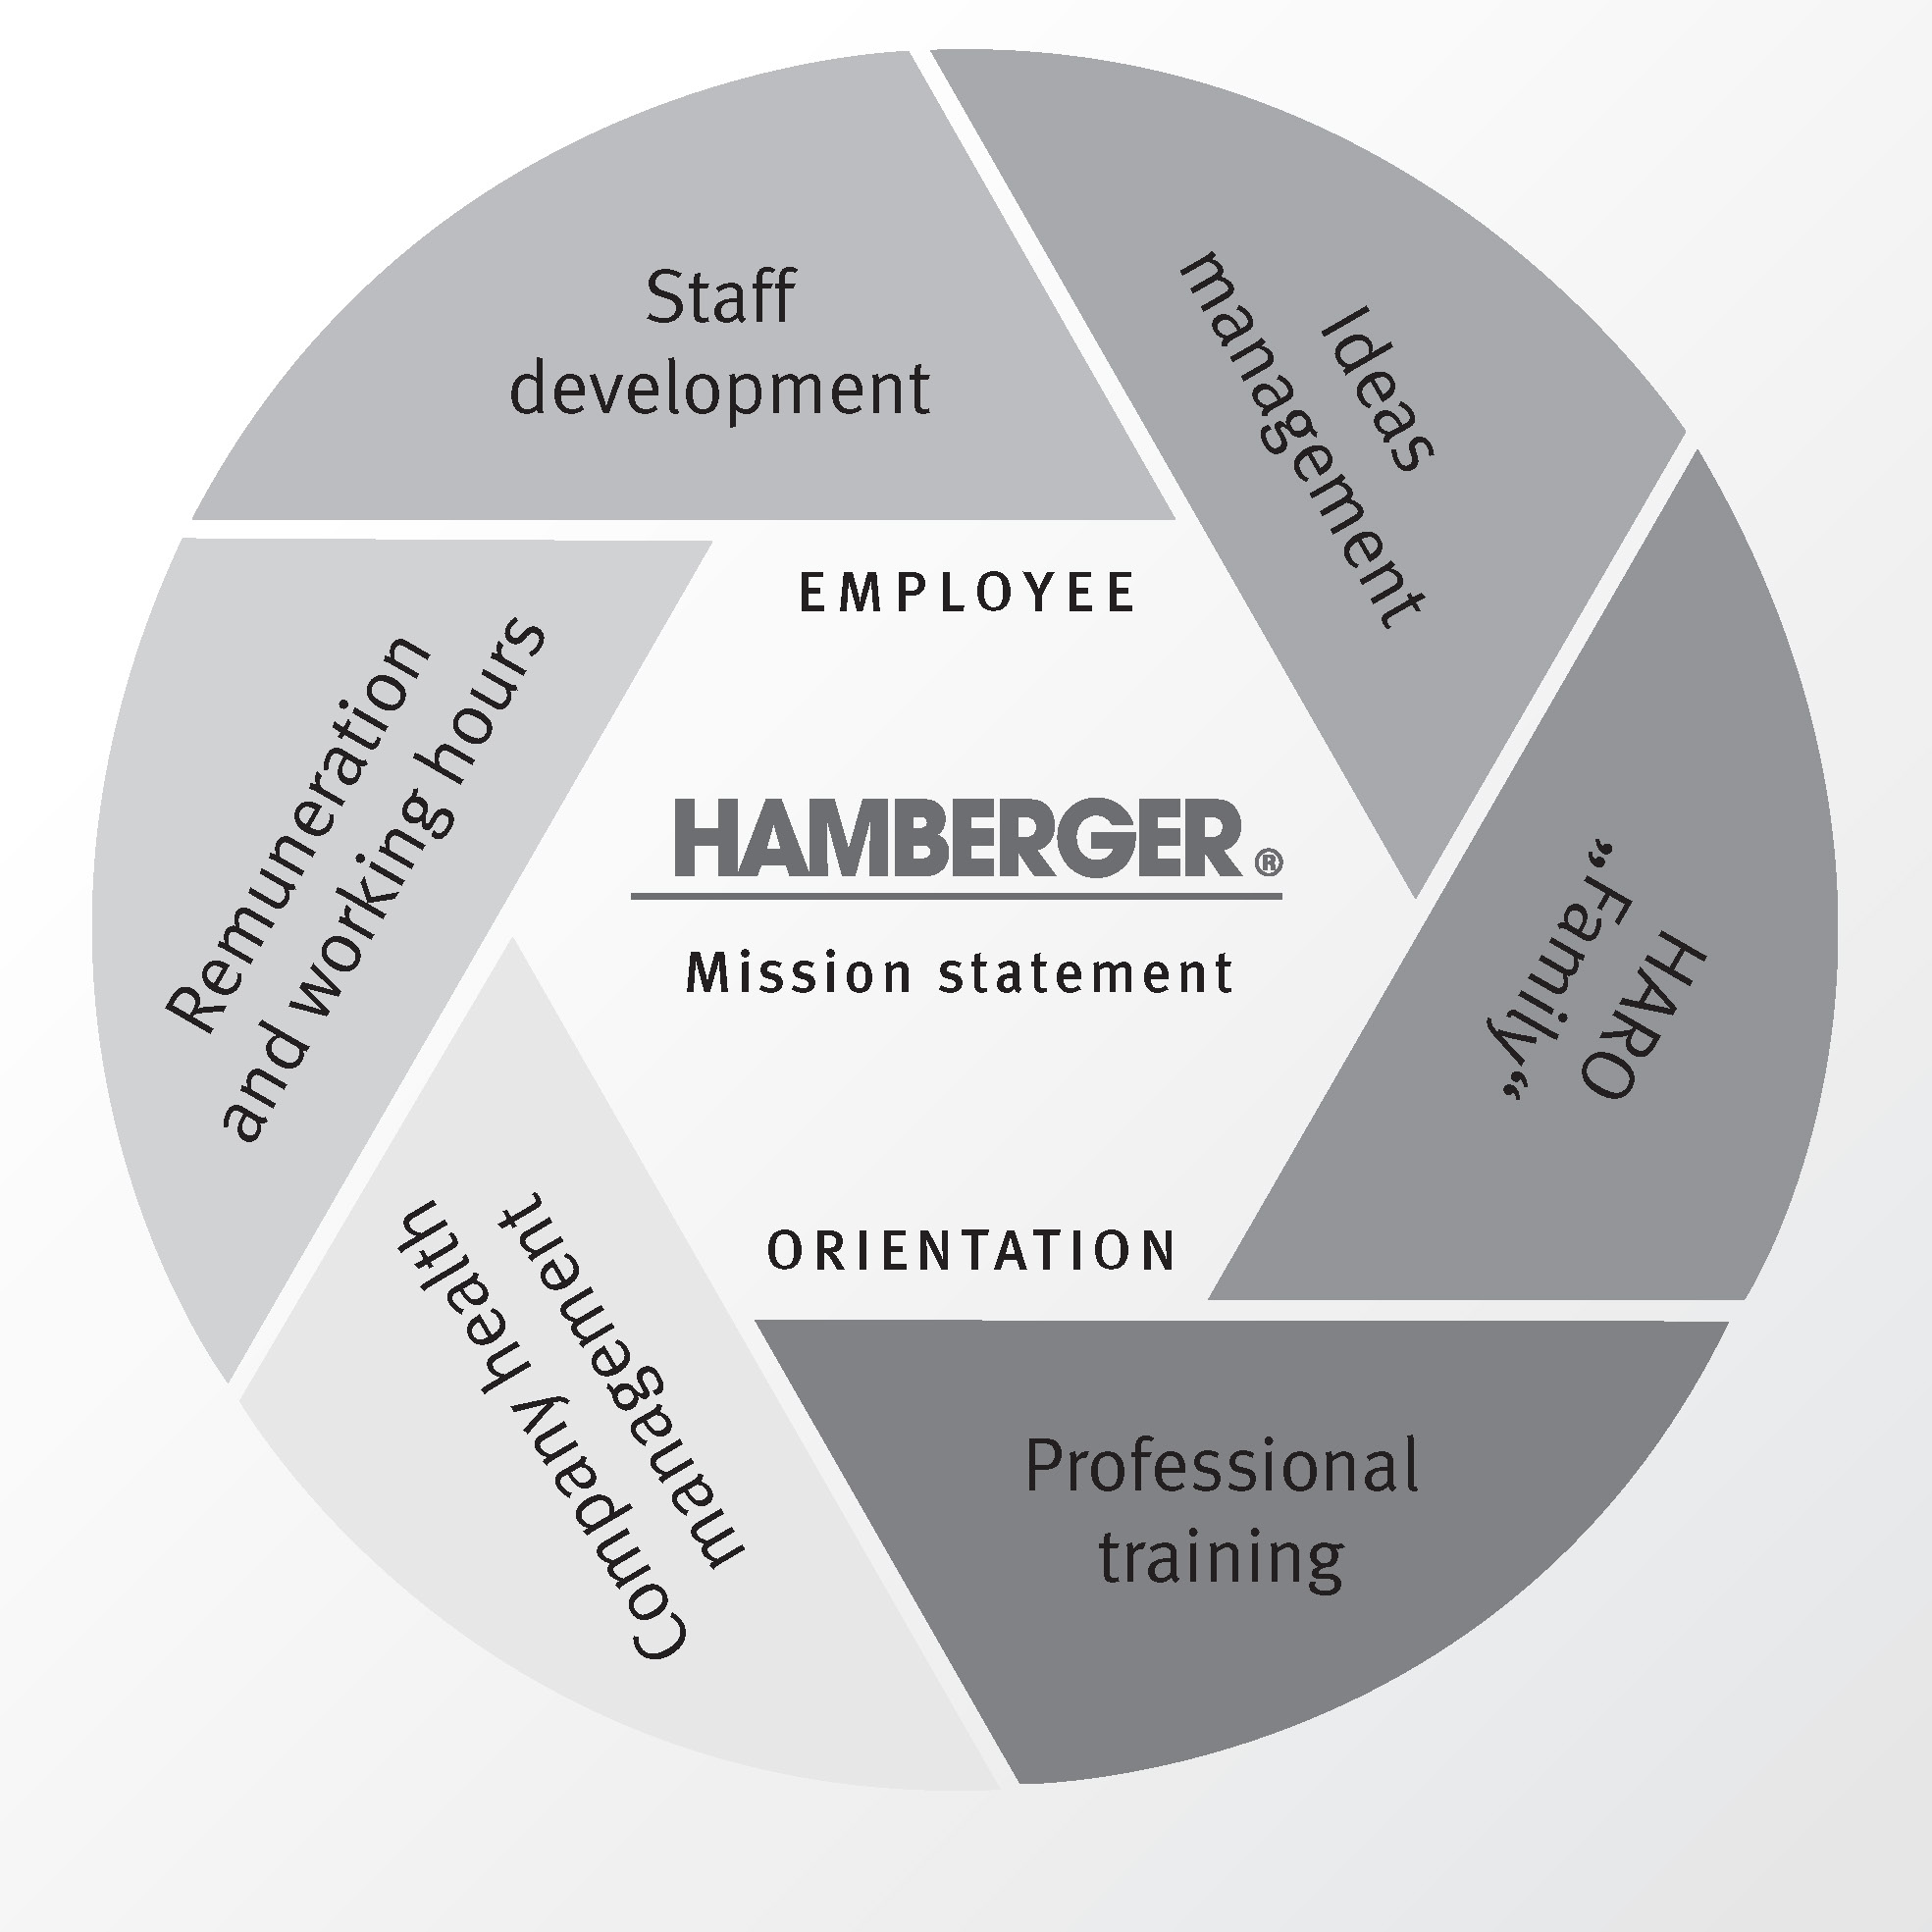 staff development work in a family company the aim of our staff development is to foster the individual professional abilities of our employees for this reason the continuous needs and